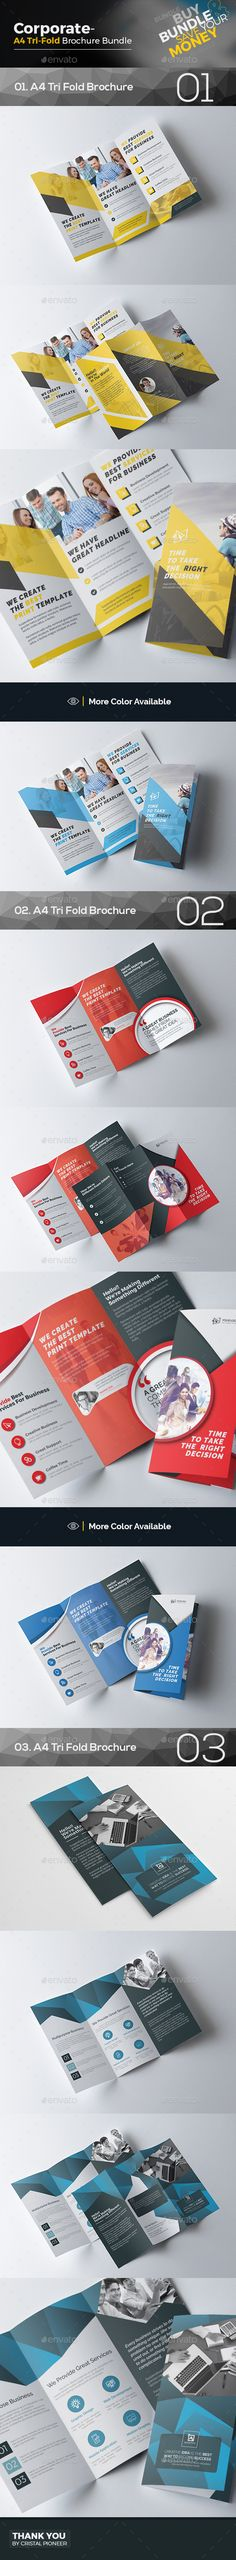 Tri Fold Brochure Bundle Templates Vector EPS, AI Illustrator. Download here: https://graphicriver.net/item/tri-fold-brochure-bundle-3-in-1/17617295?ref=ksioks